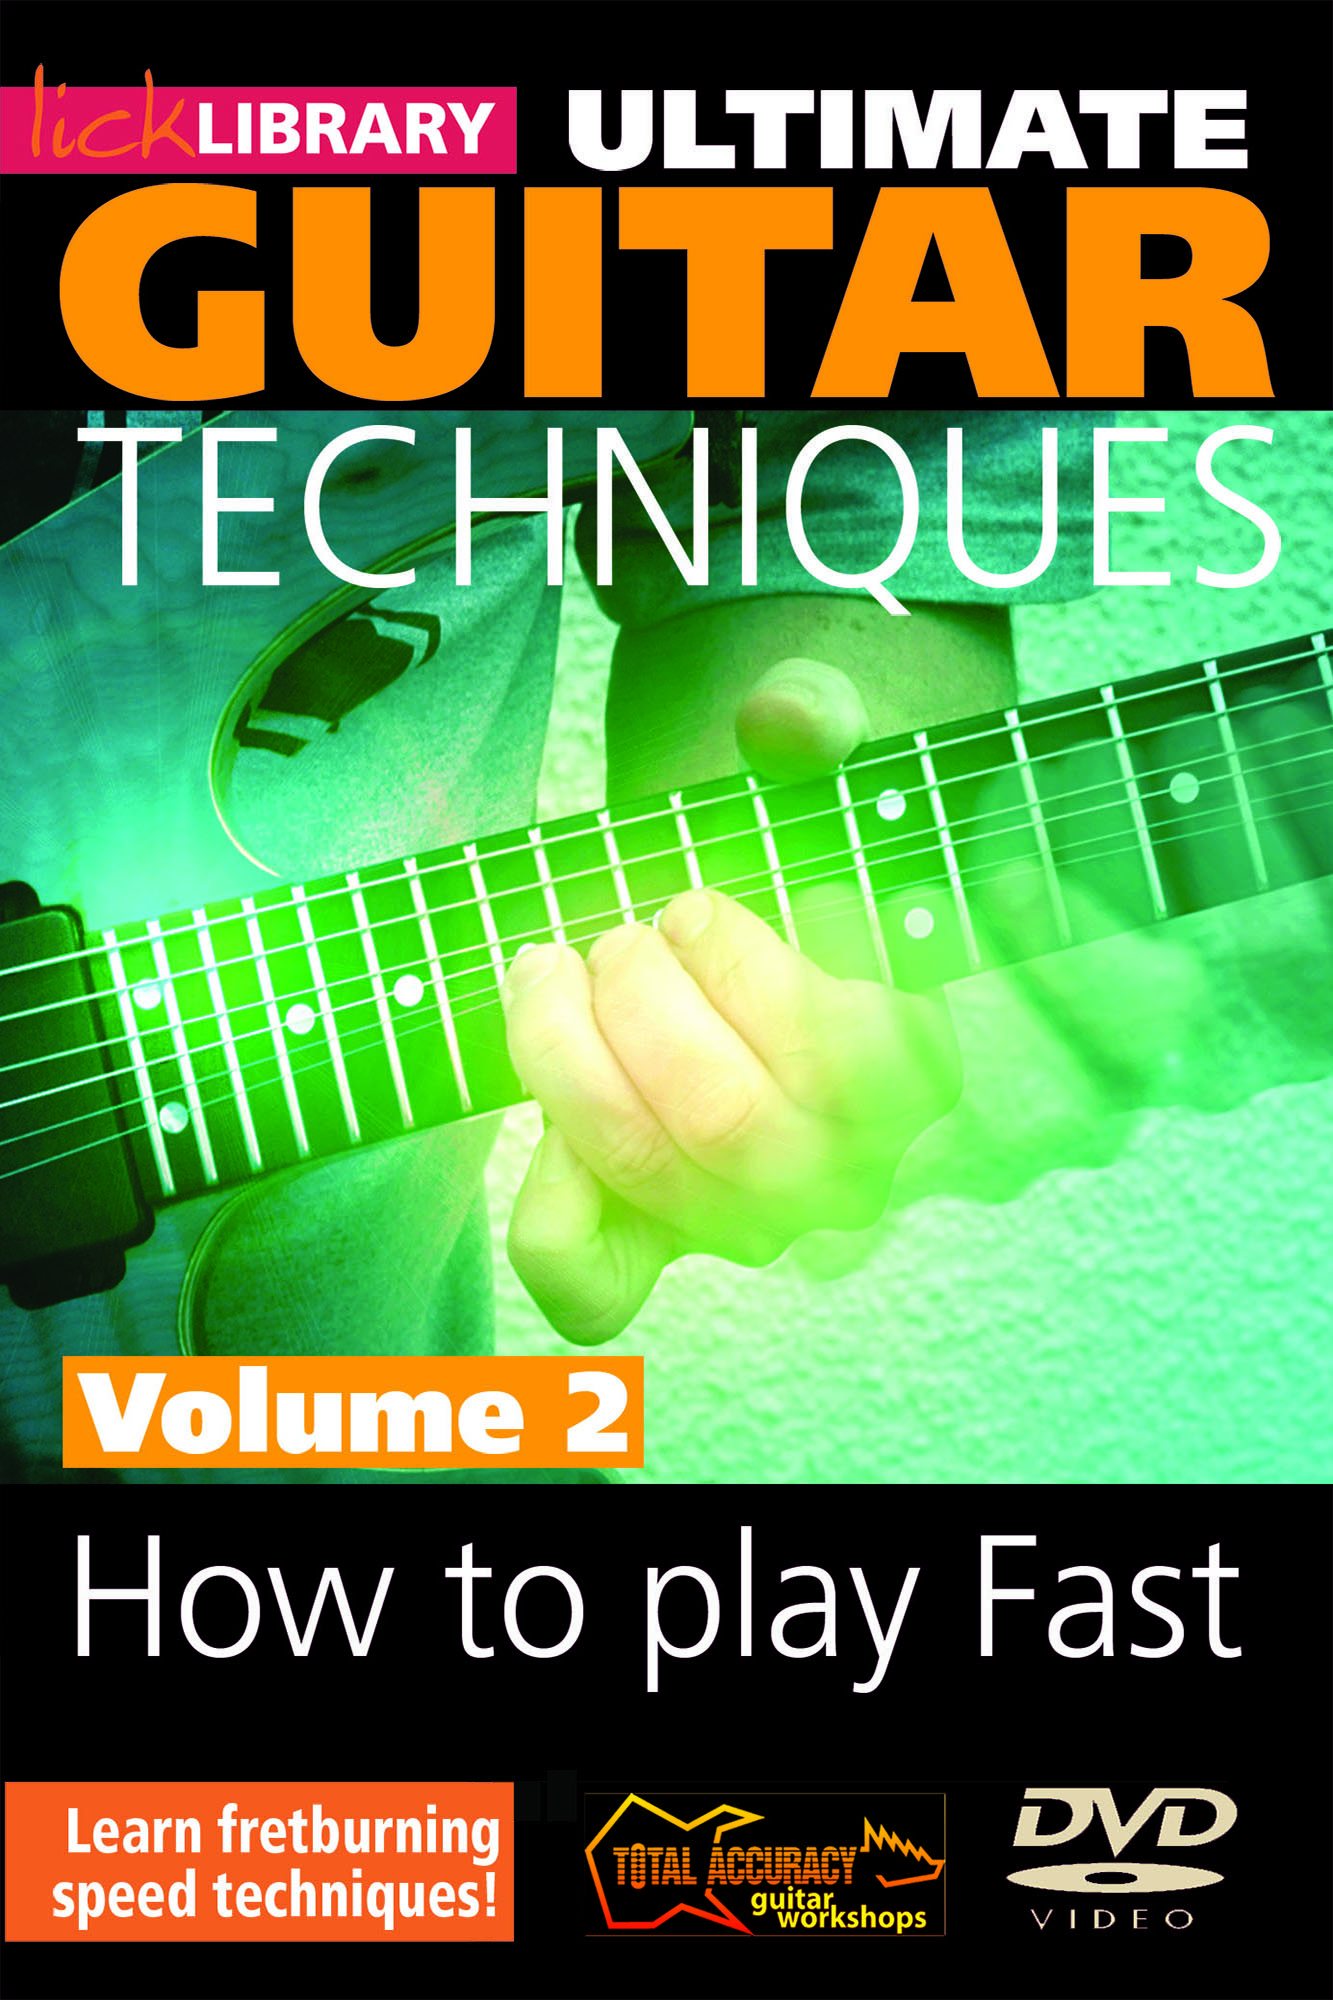 Ultimate Guitar - How To Play Fast Volume 2